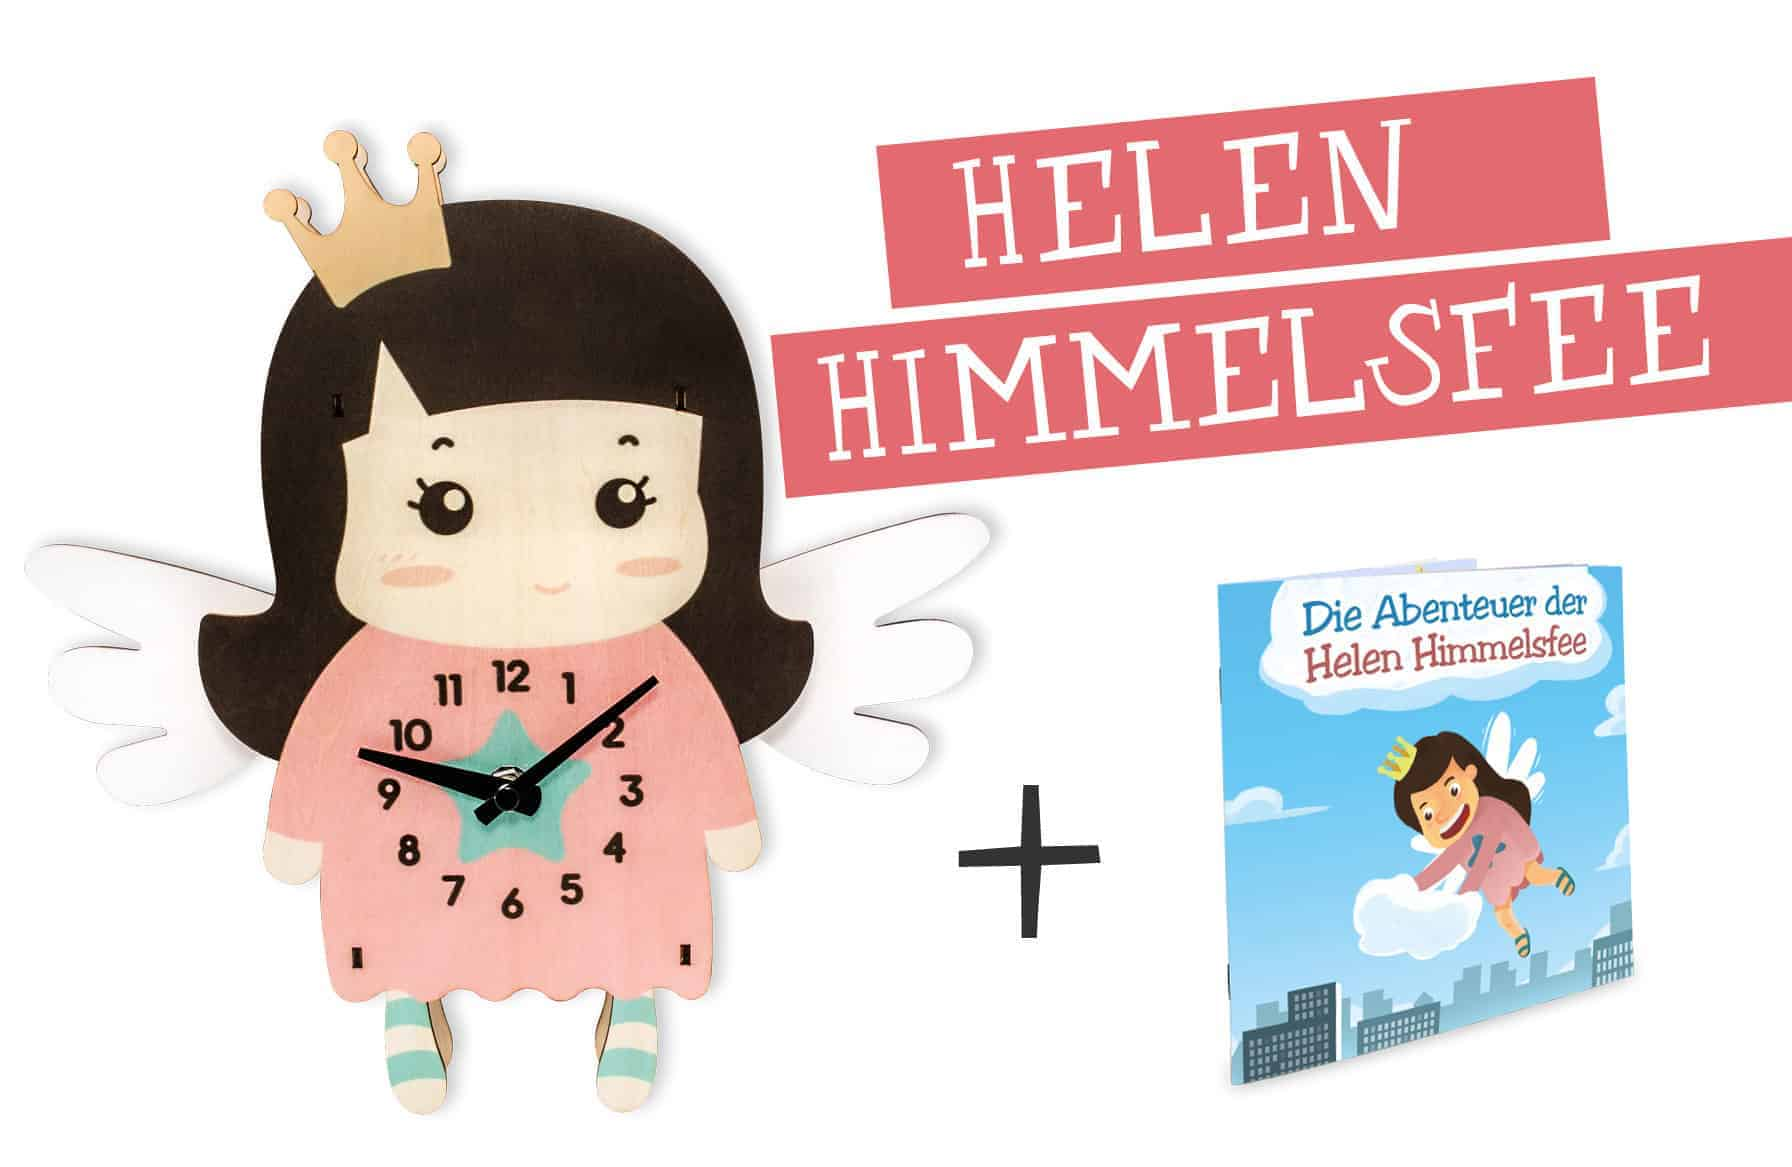 Glueckswolke Highlight - Helen Himmelsfee